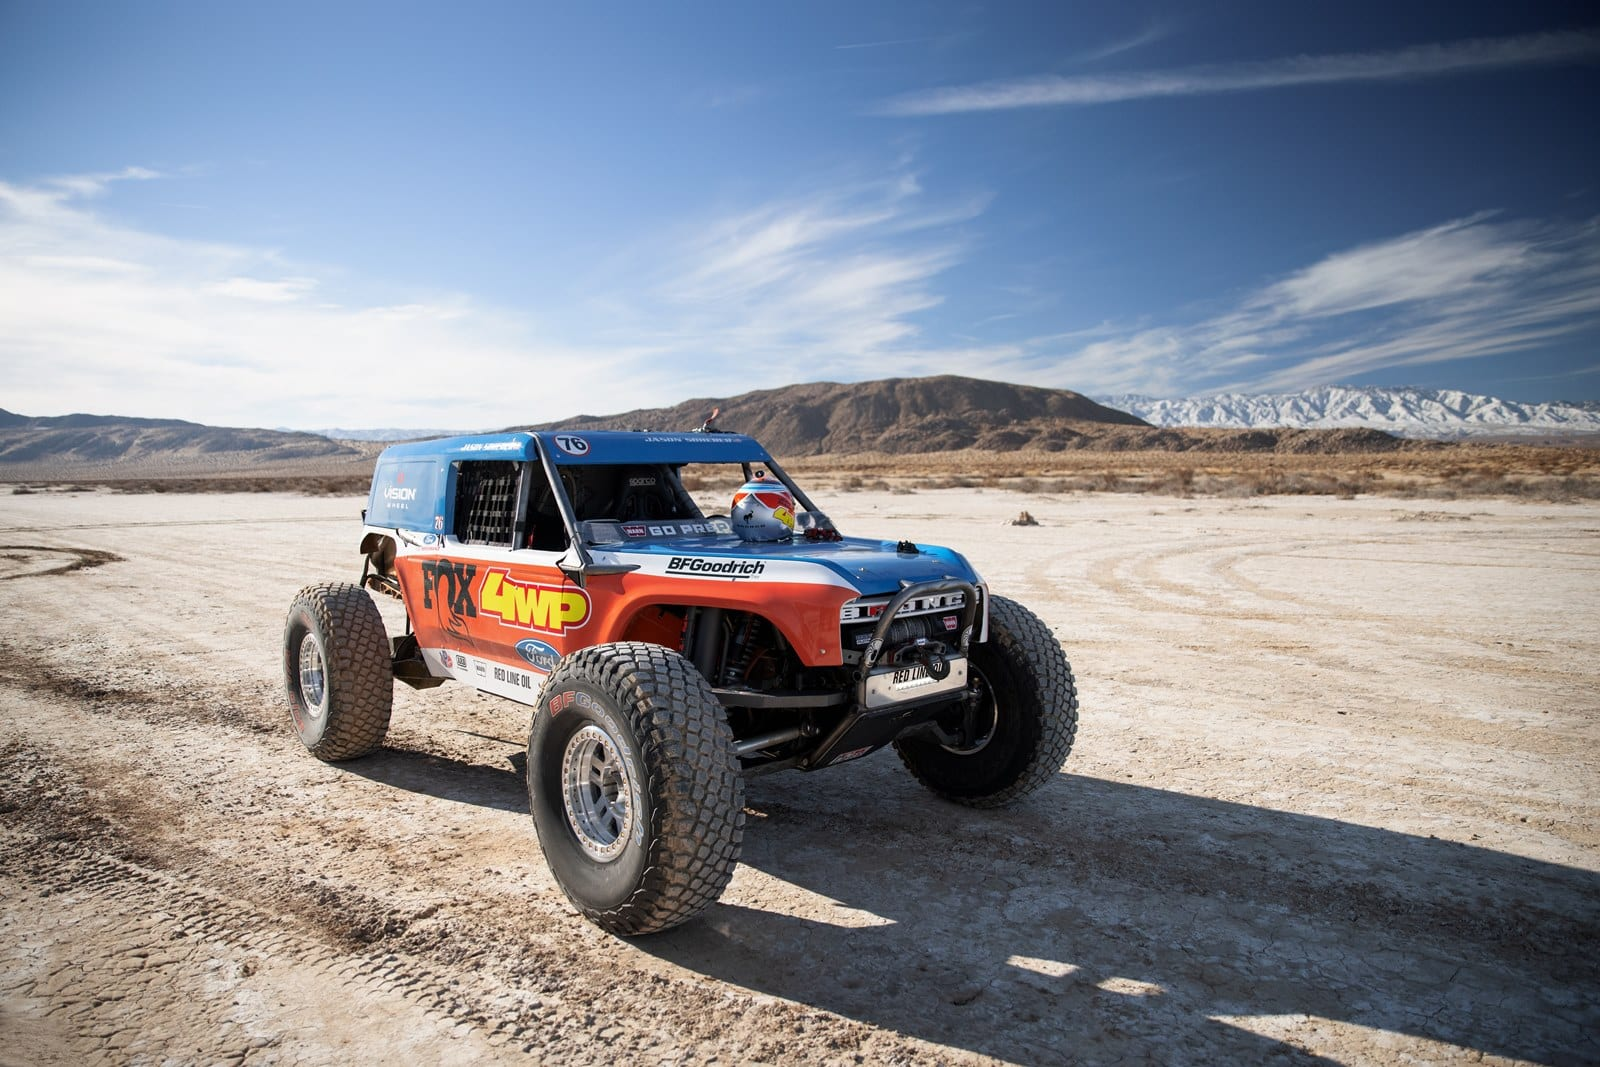 This is the Bronco 4400, a beast inspired by the Bronco R Race Prototype